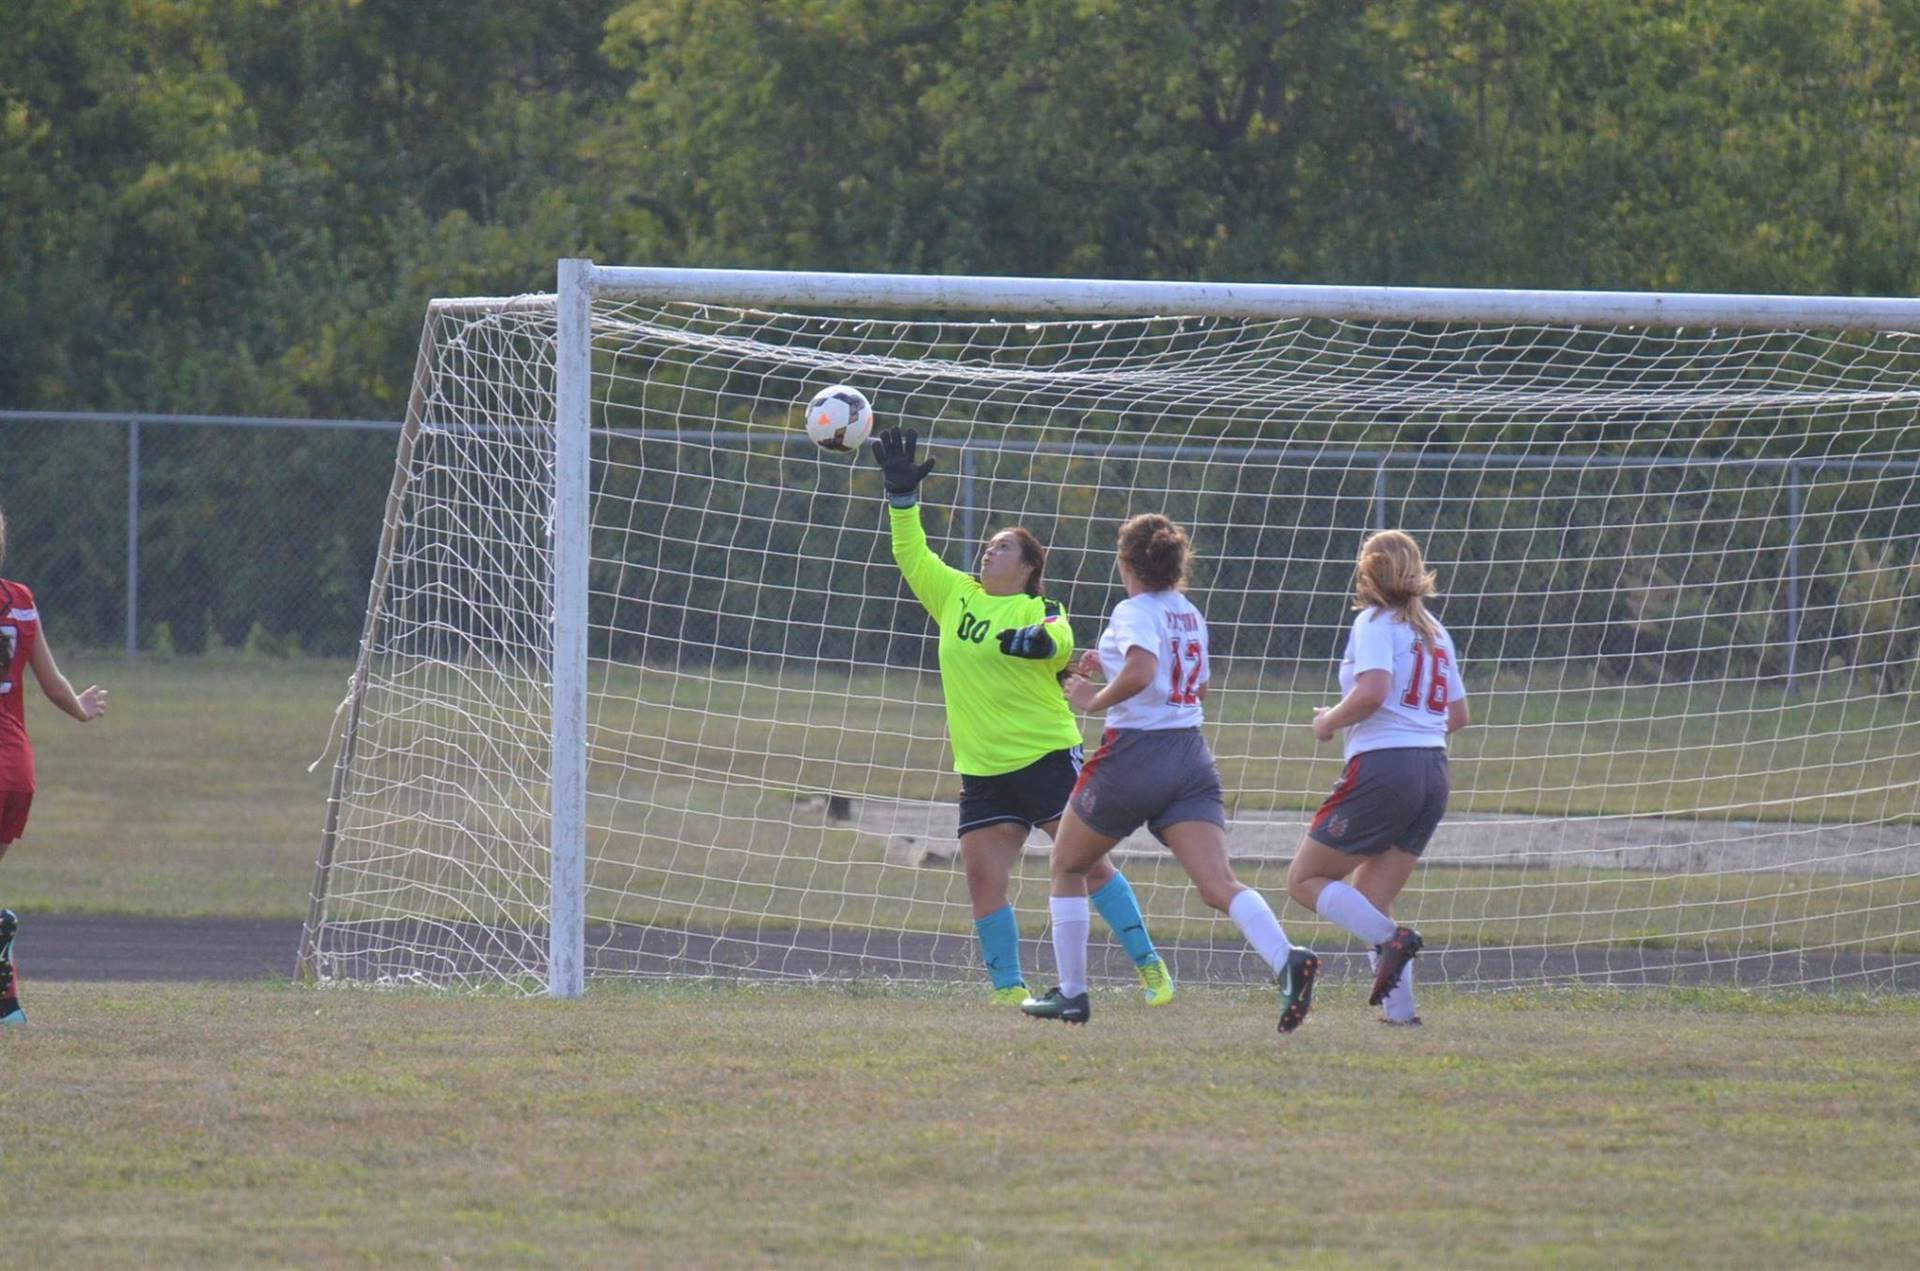 Cameryn Alexzander blocking the ball from going into the goal.